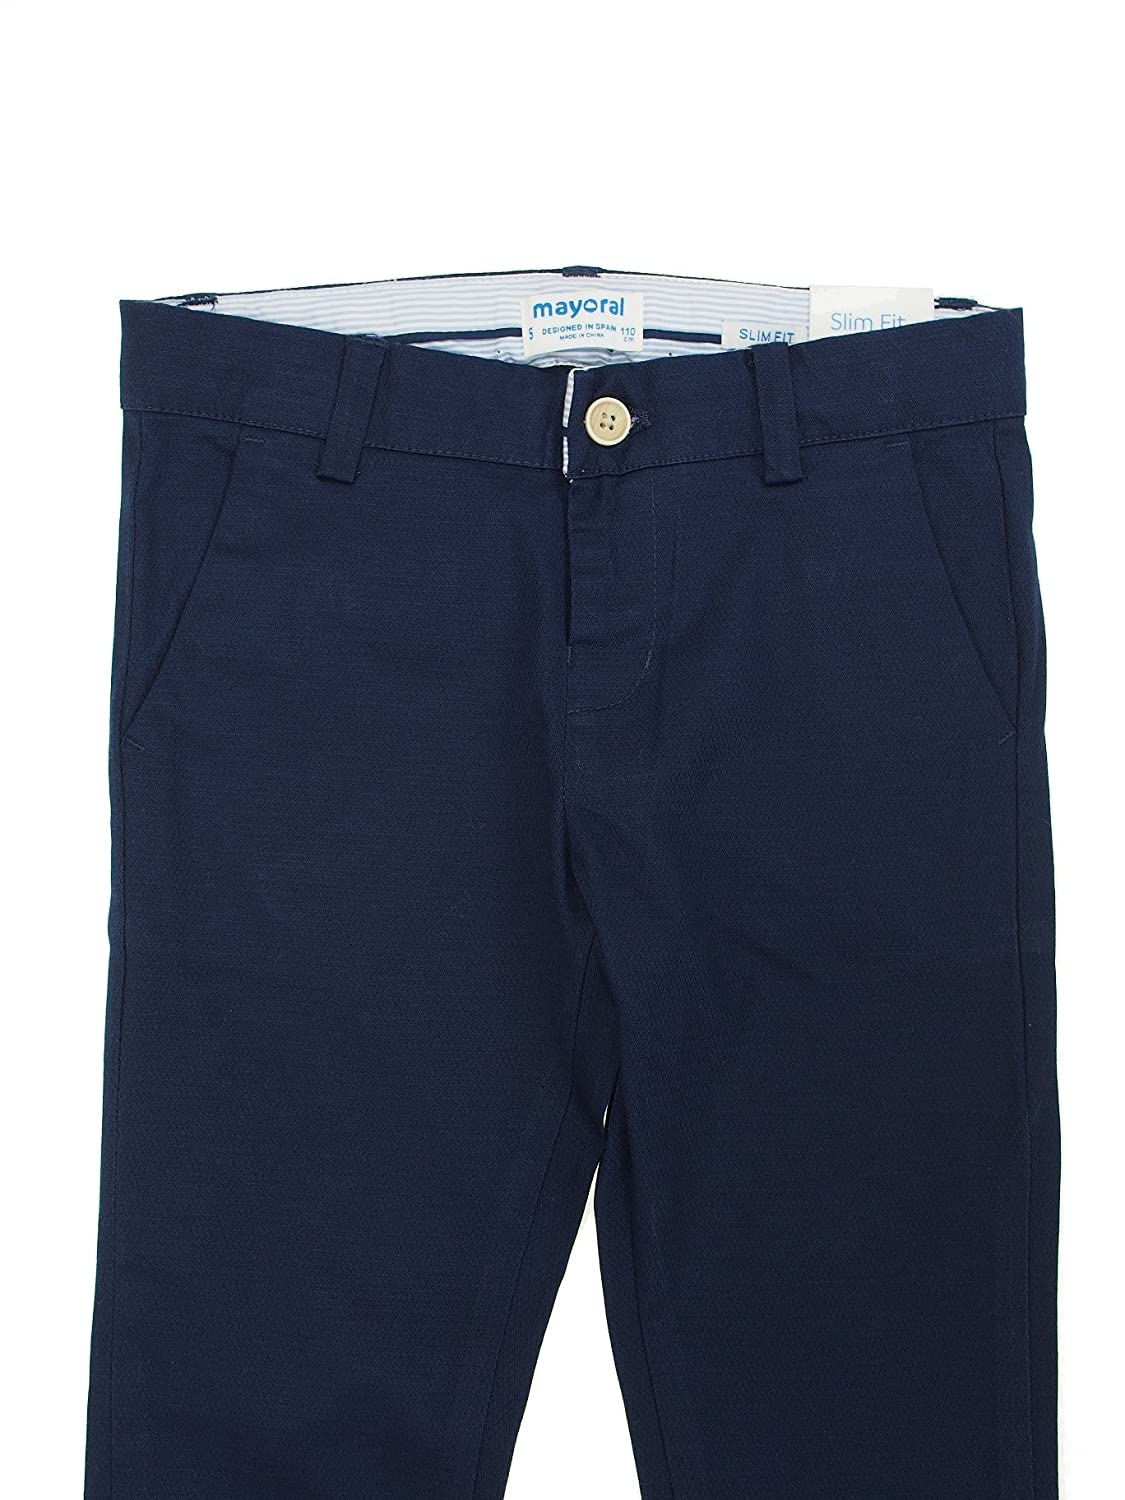 Stretchy Chino Pants for Boys 3526 Mayoral Blue